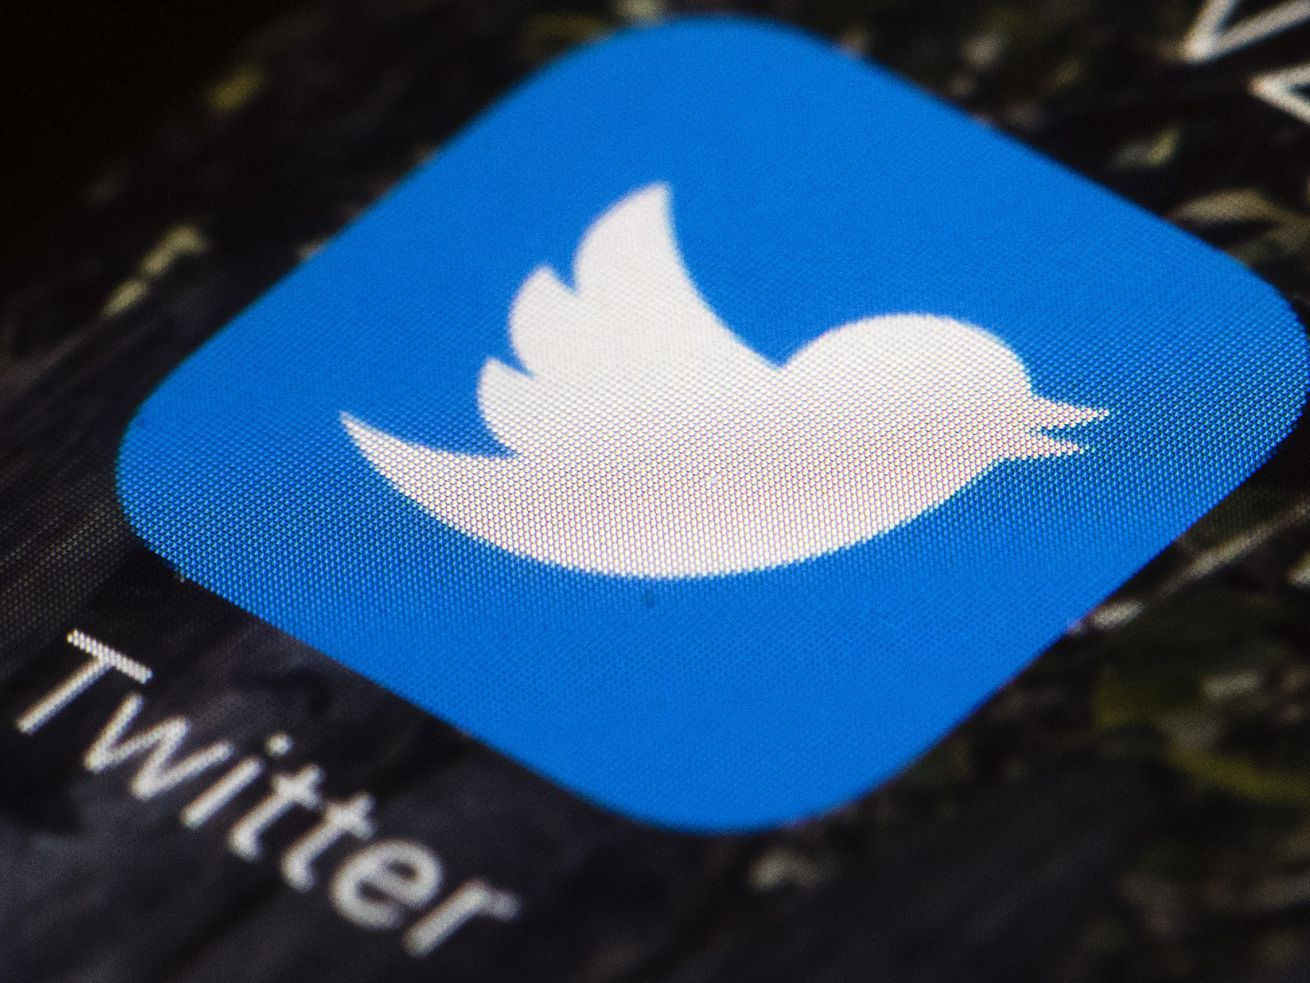 Video posts on Twitter could become a source of income for college athletes.